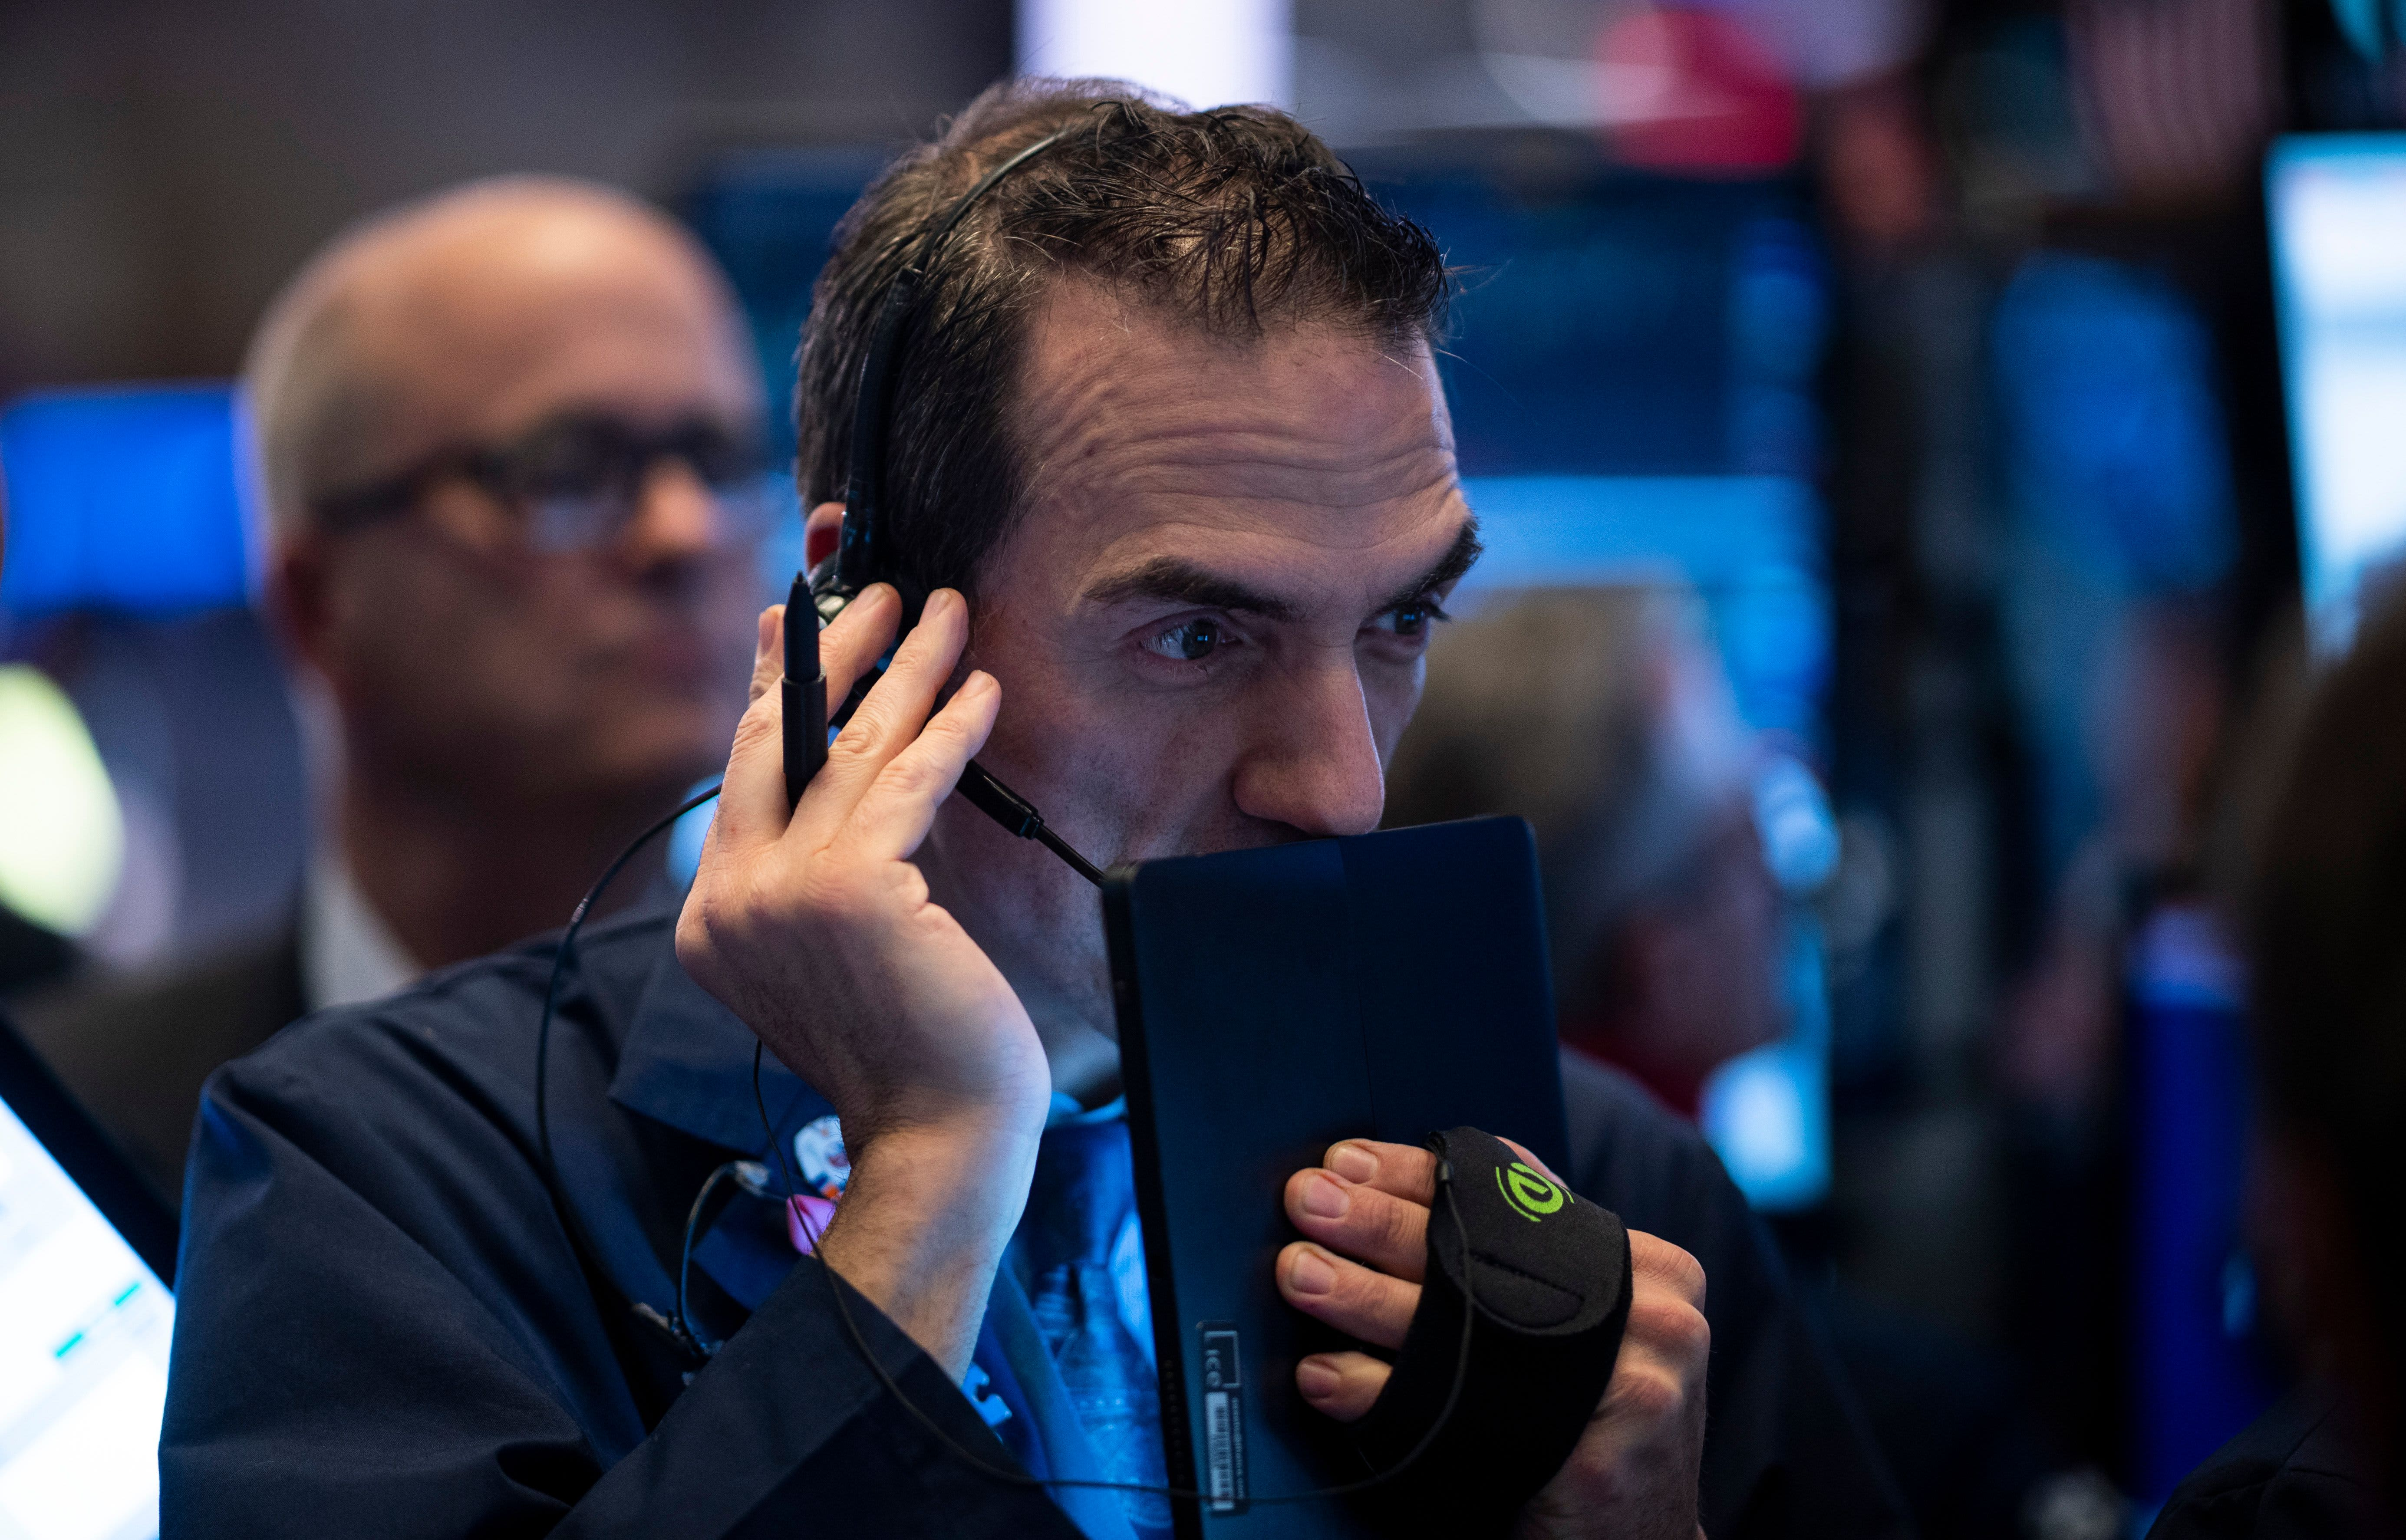 Stocks making the biggest moves premarket: Nike, Dollar General, Apple, Chewy, Tiffany & more